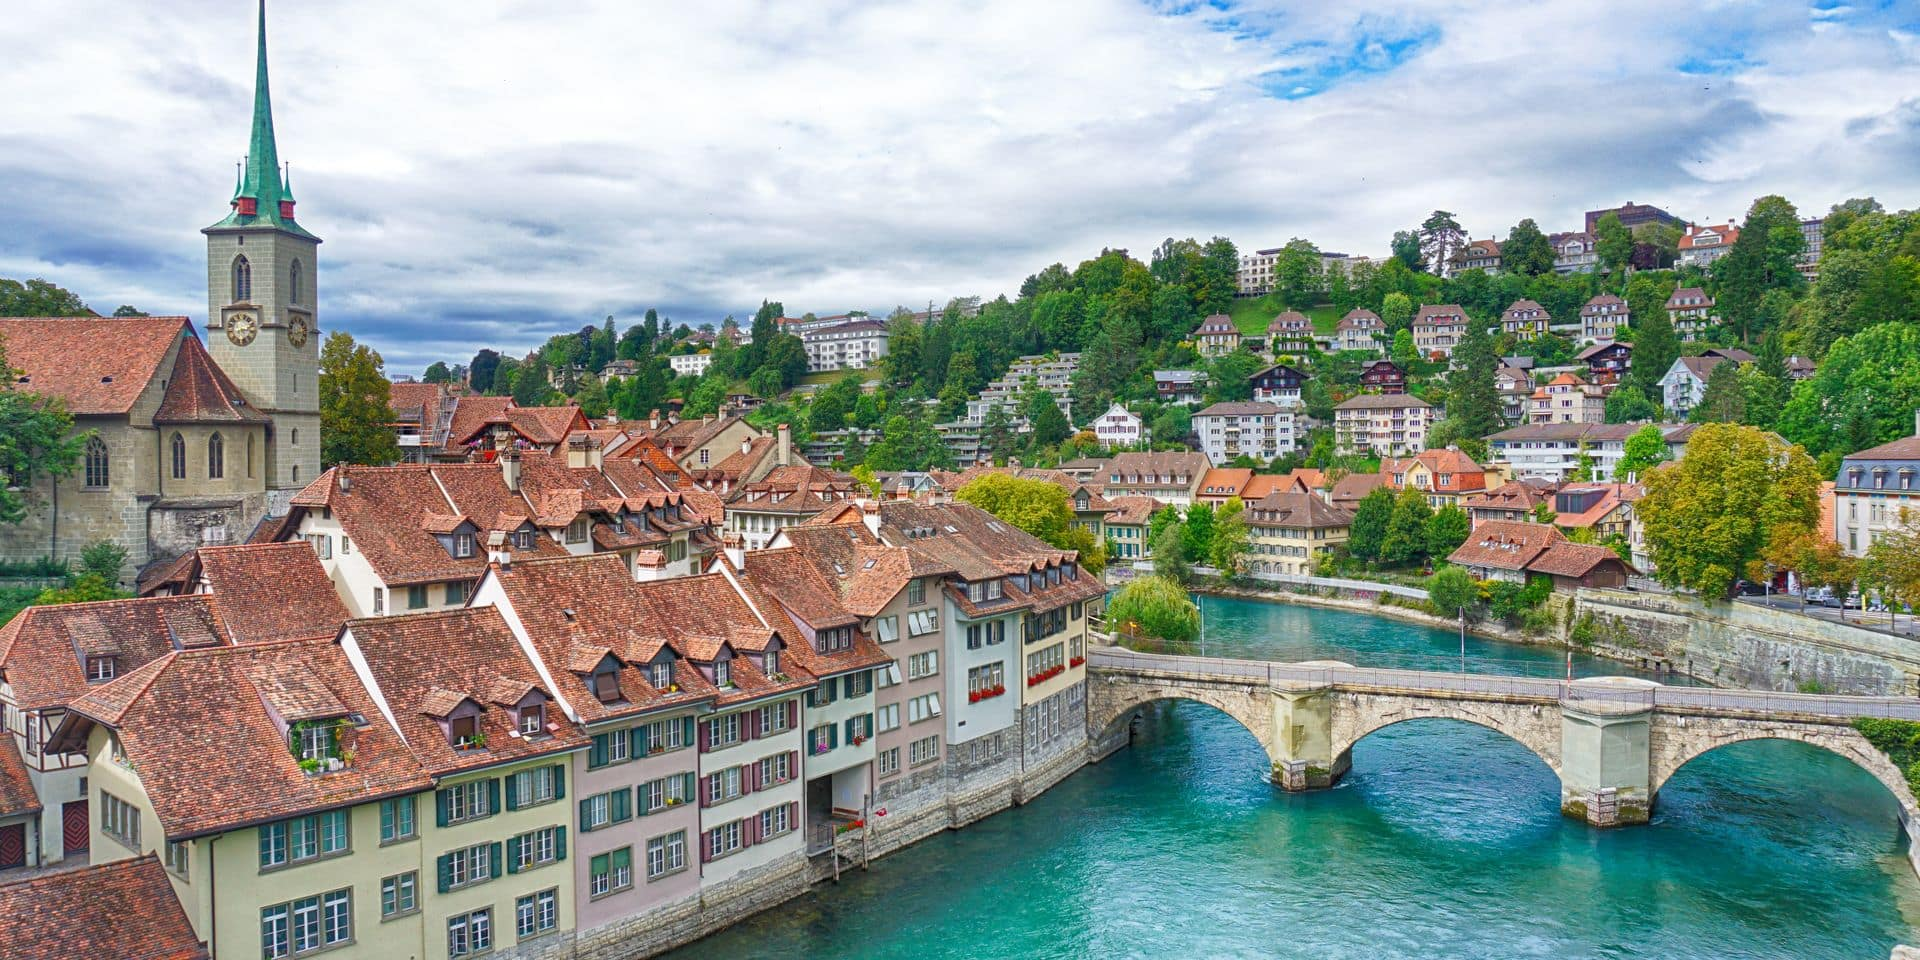 The,View,Of,Old,Town,Of,Bern,,Aare,River,And